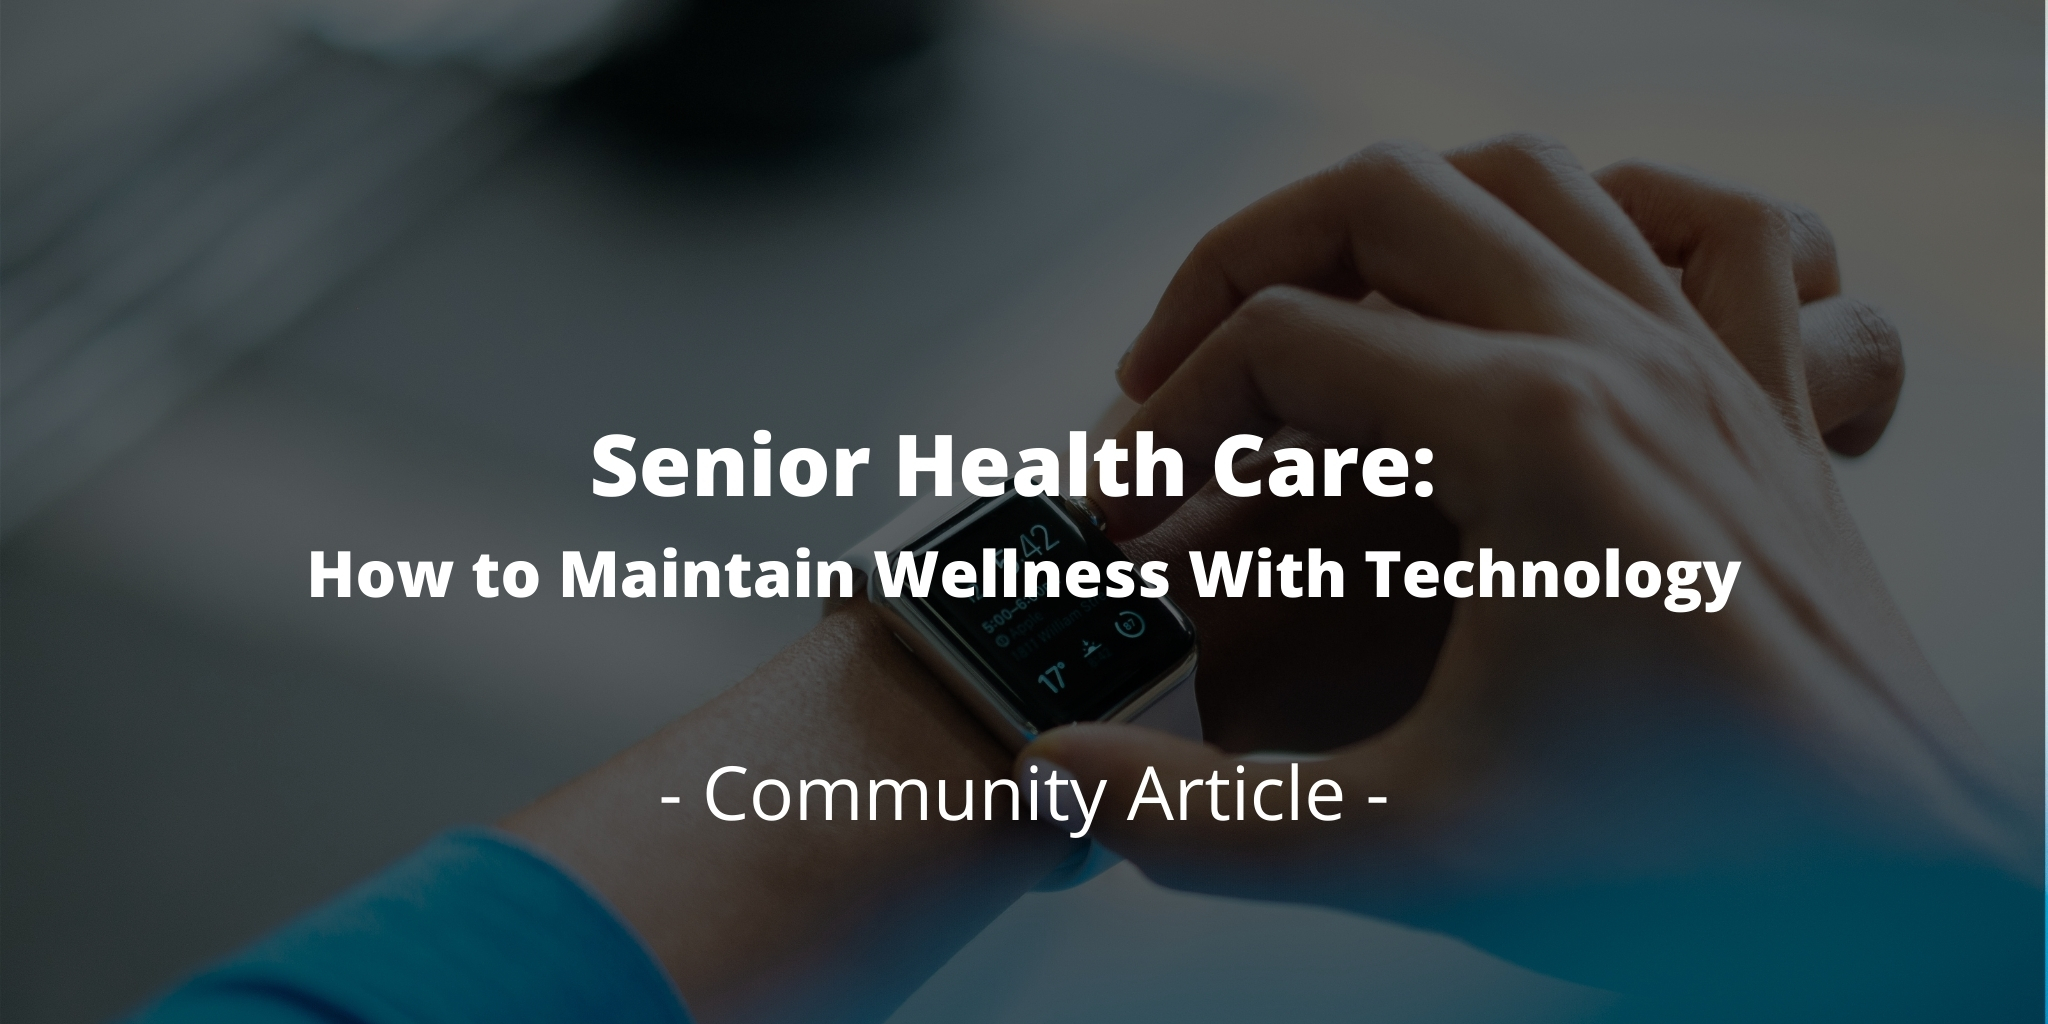 Senior Health Care: How to Maintain Wellness With Technology